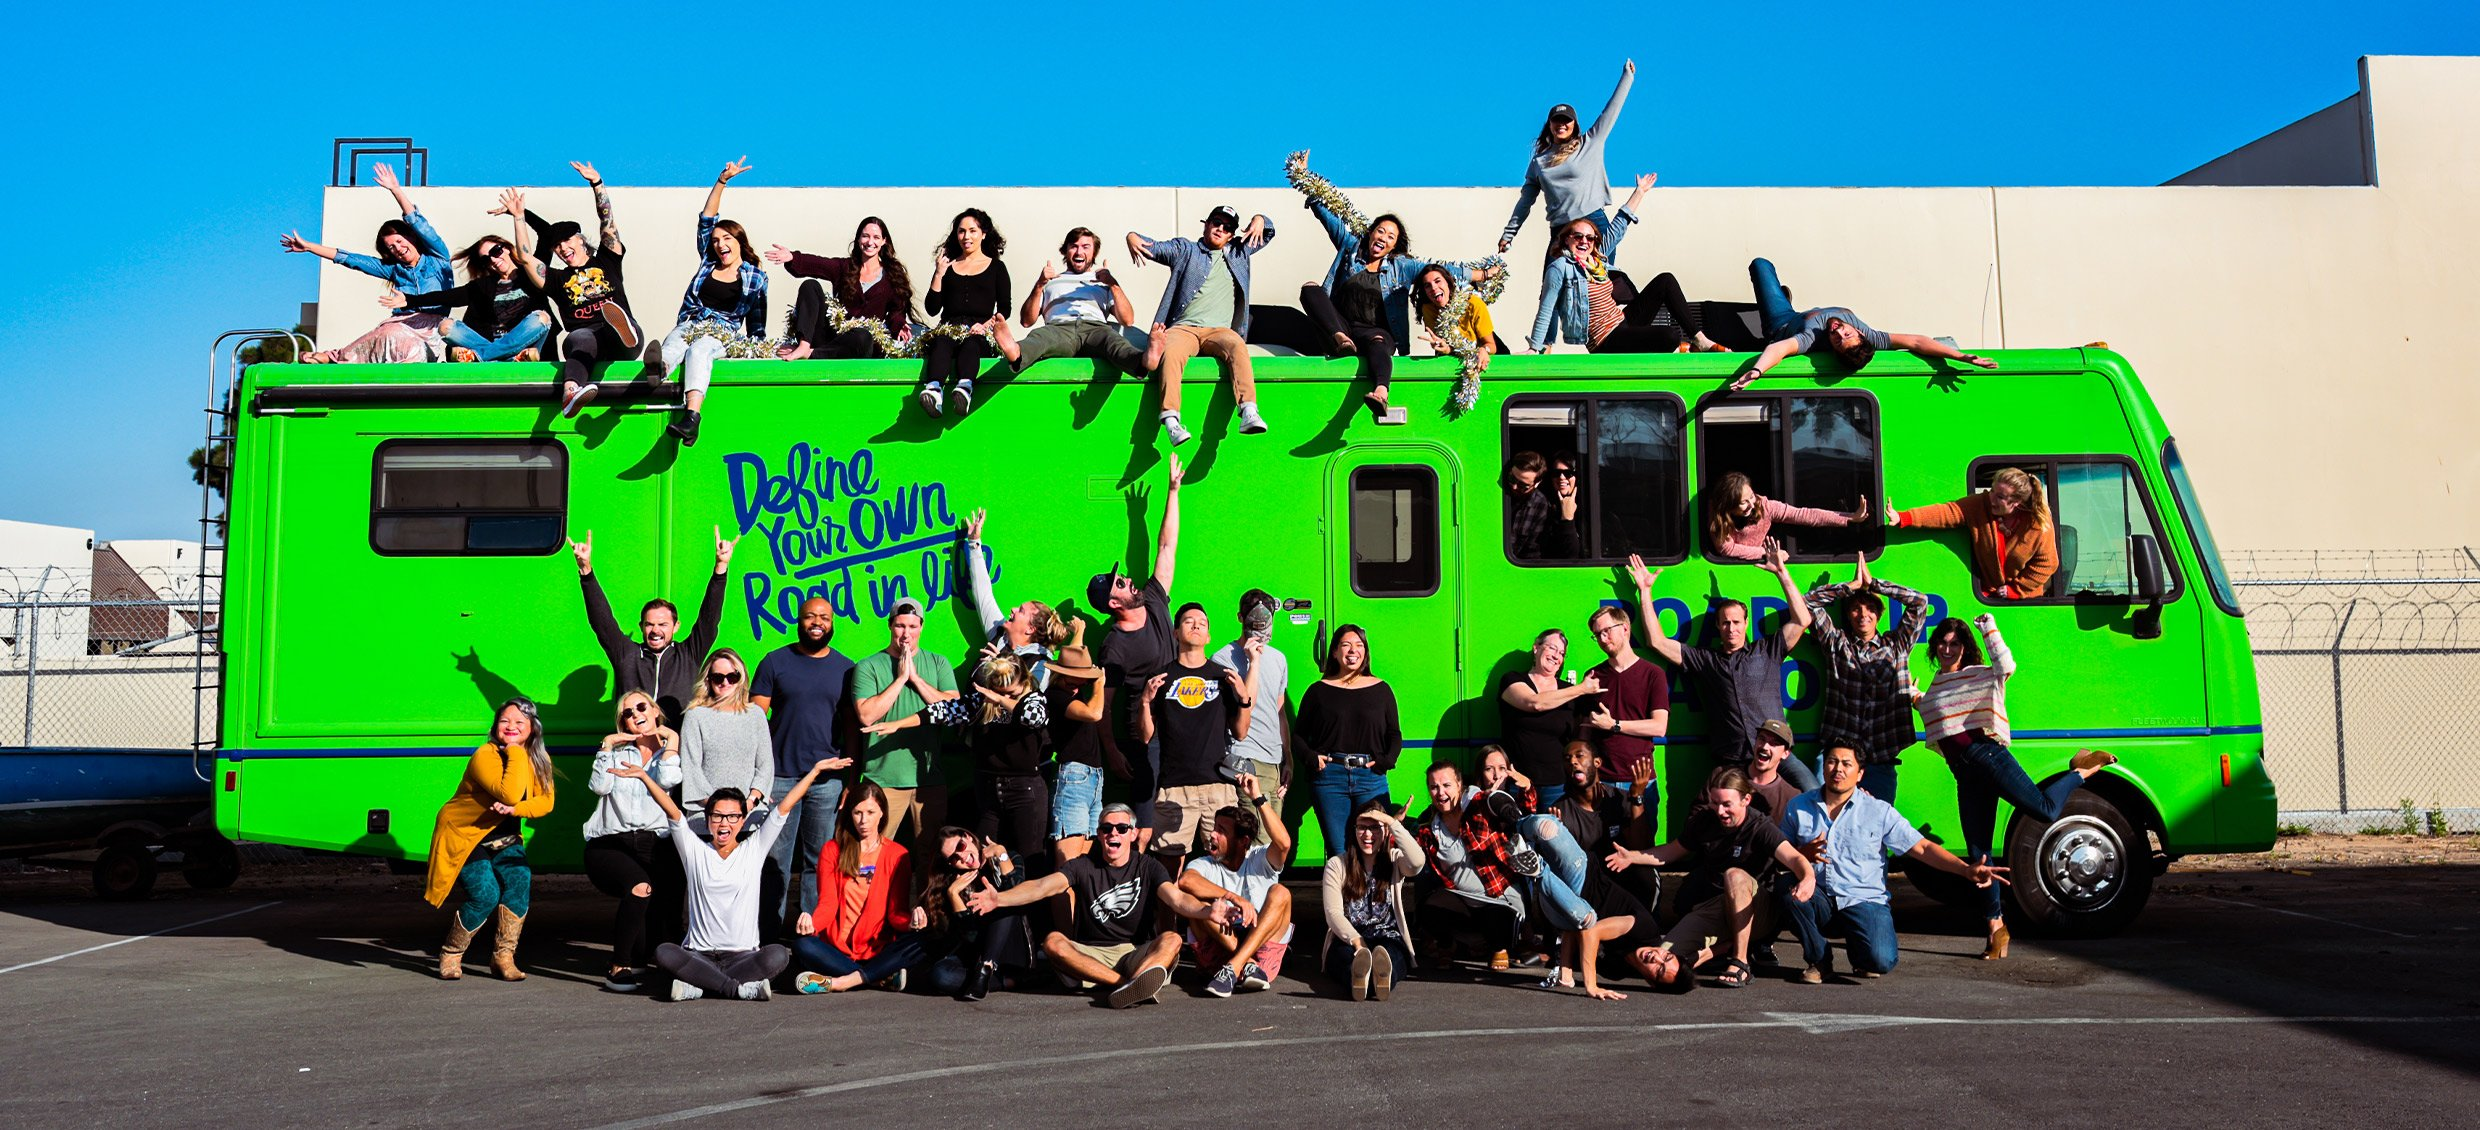 The Roadtrip Nation staff does a goofy pose in front of the green RV.